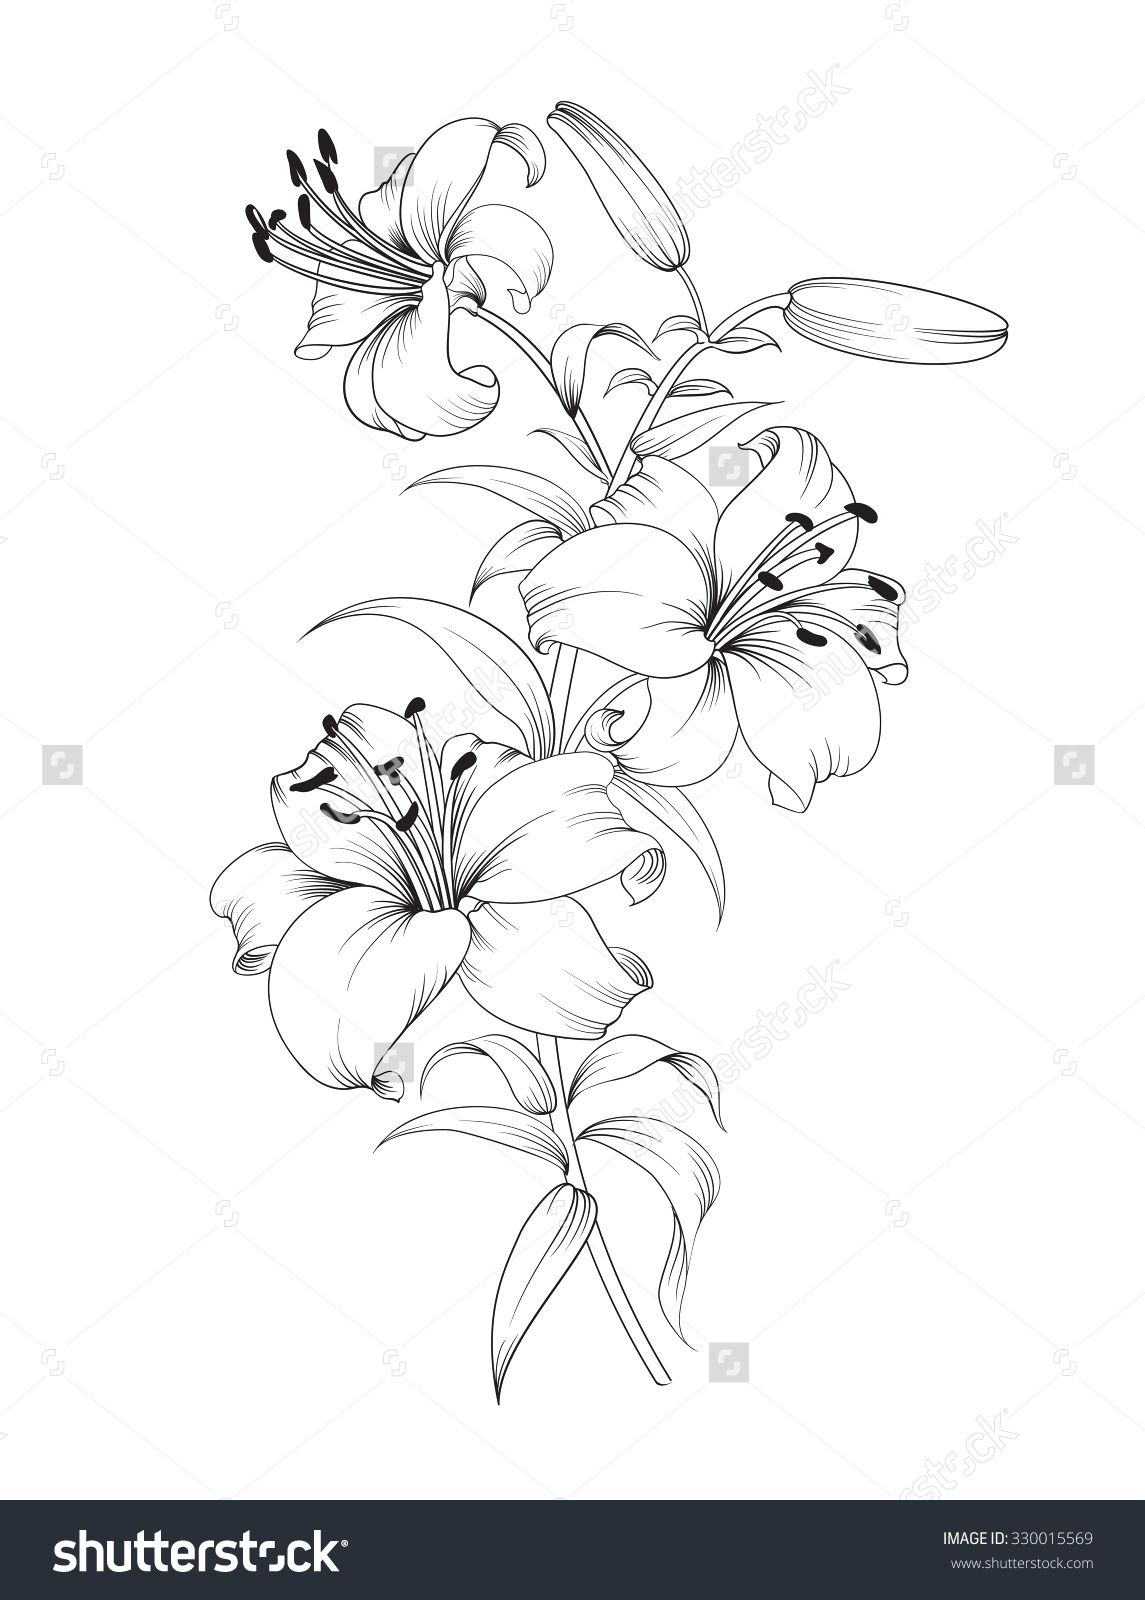 Group of lily flowers. Floral background with blooming